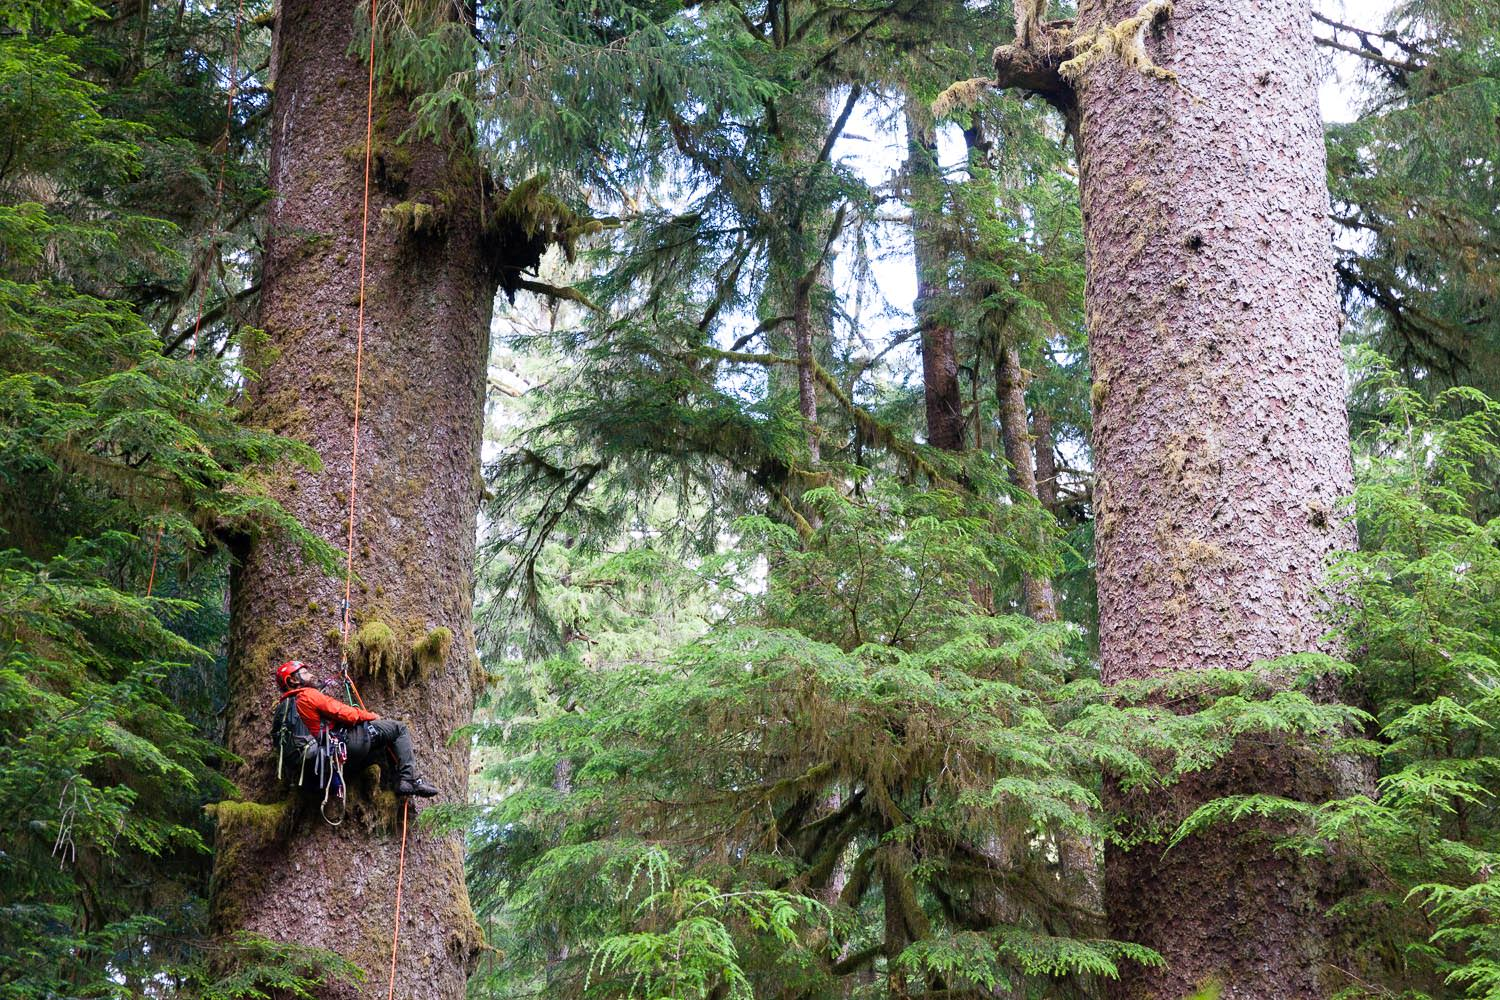 carmanah-valley-tree-climbing-sitka-spruce-1.jpg